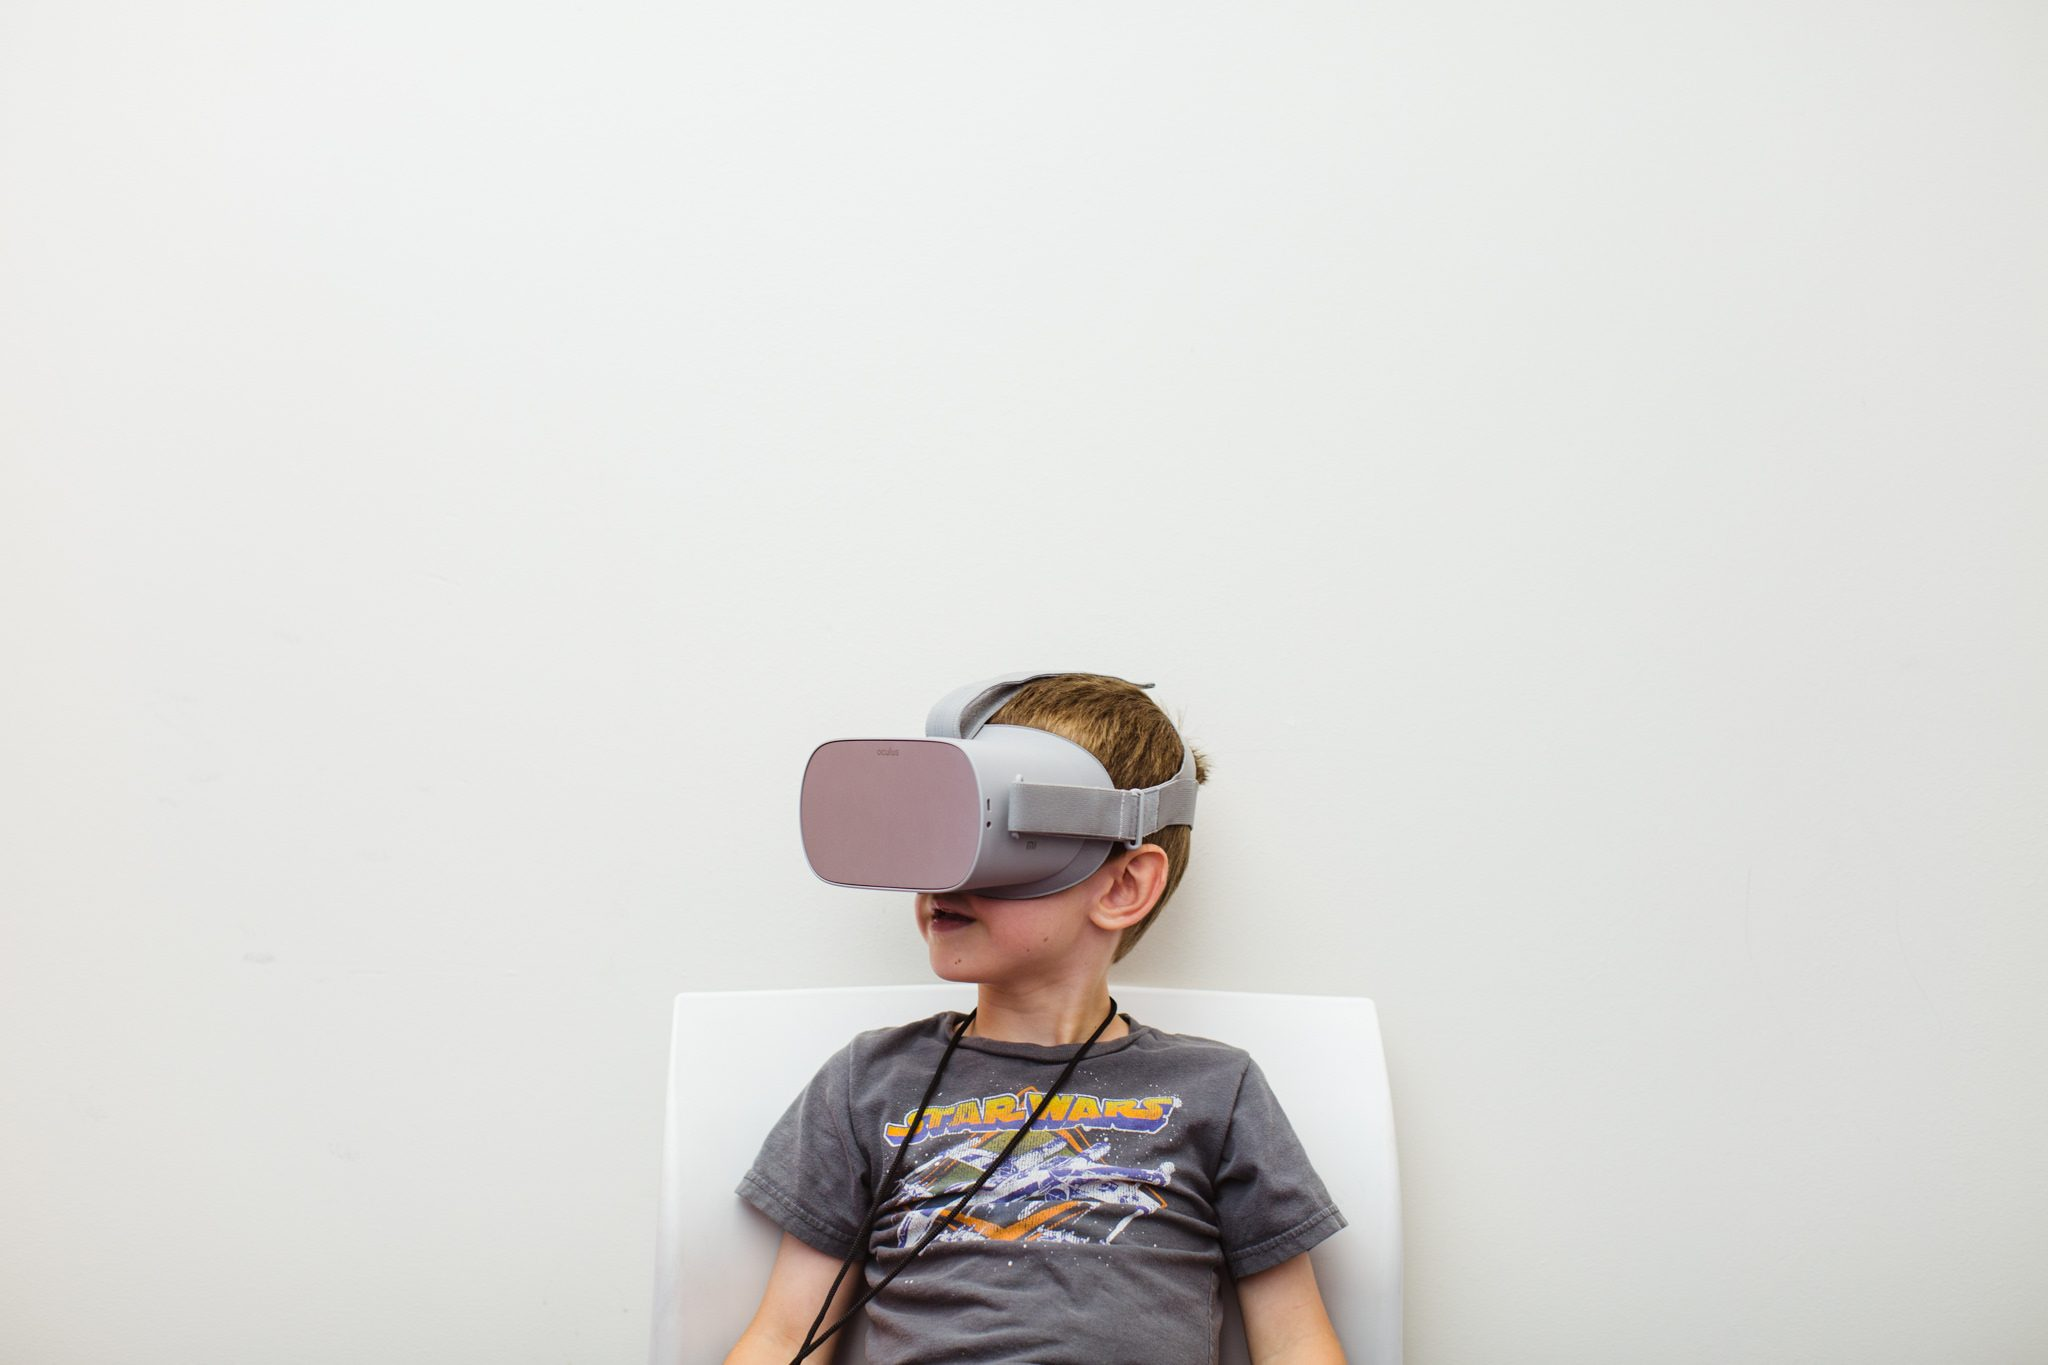 Do Space Introducing Our New Oculus Go VR Headset - Do Space